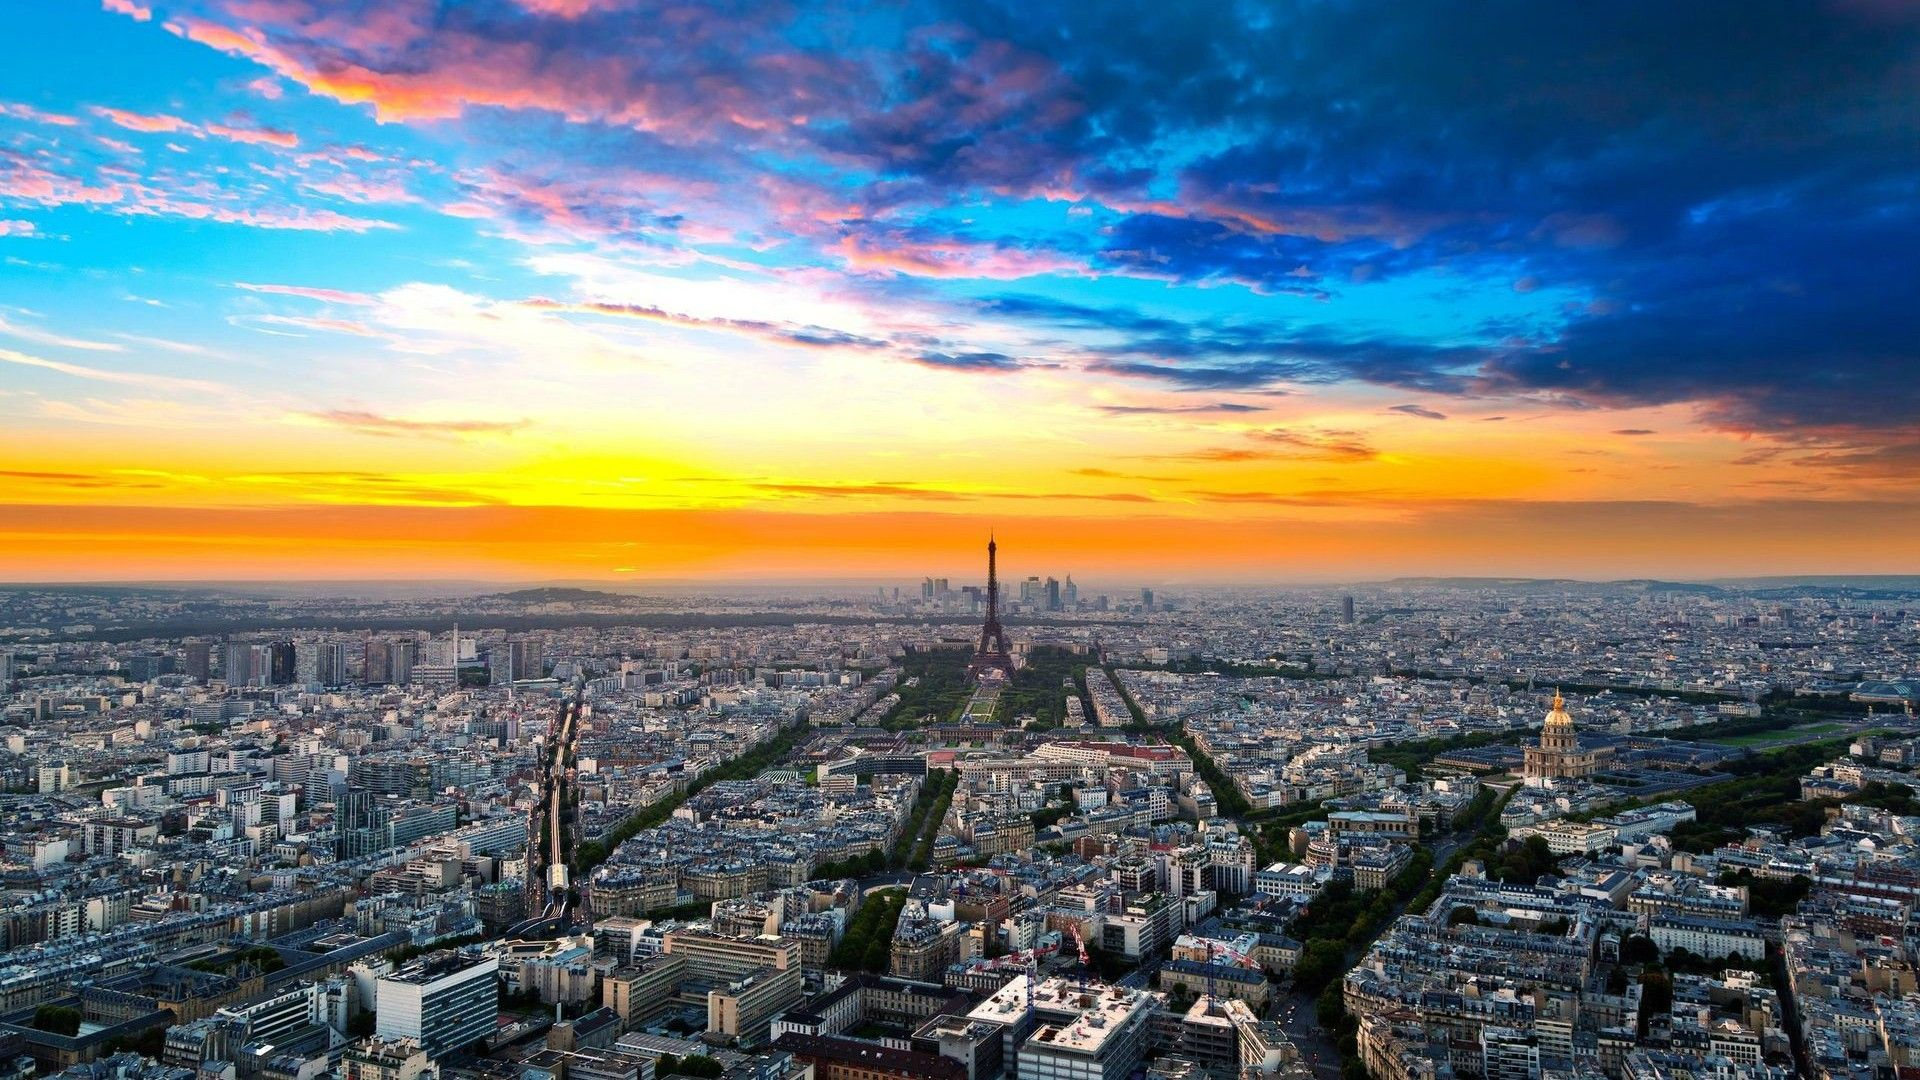 d widescreen desktop wallpaper of paris hd wallpapers 1280a—1024 paris wallpapers for desktop